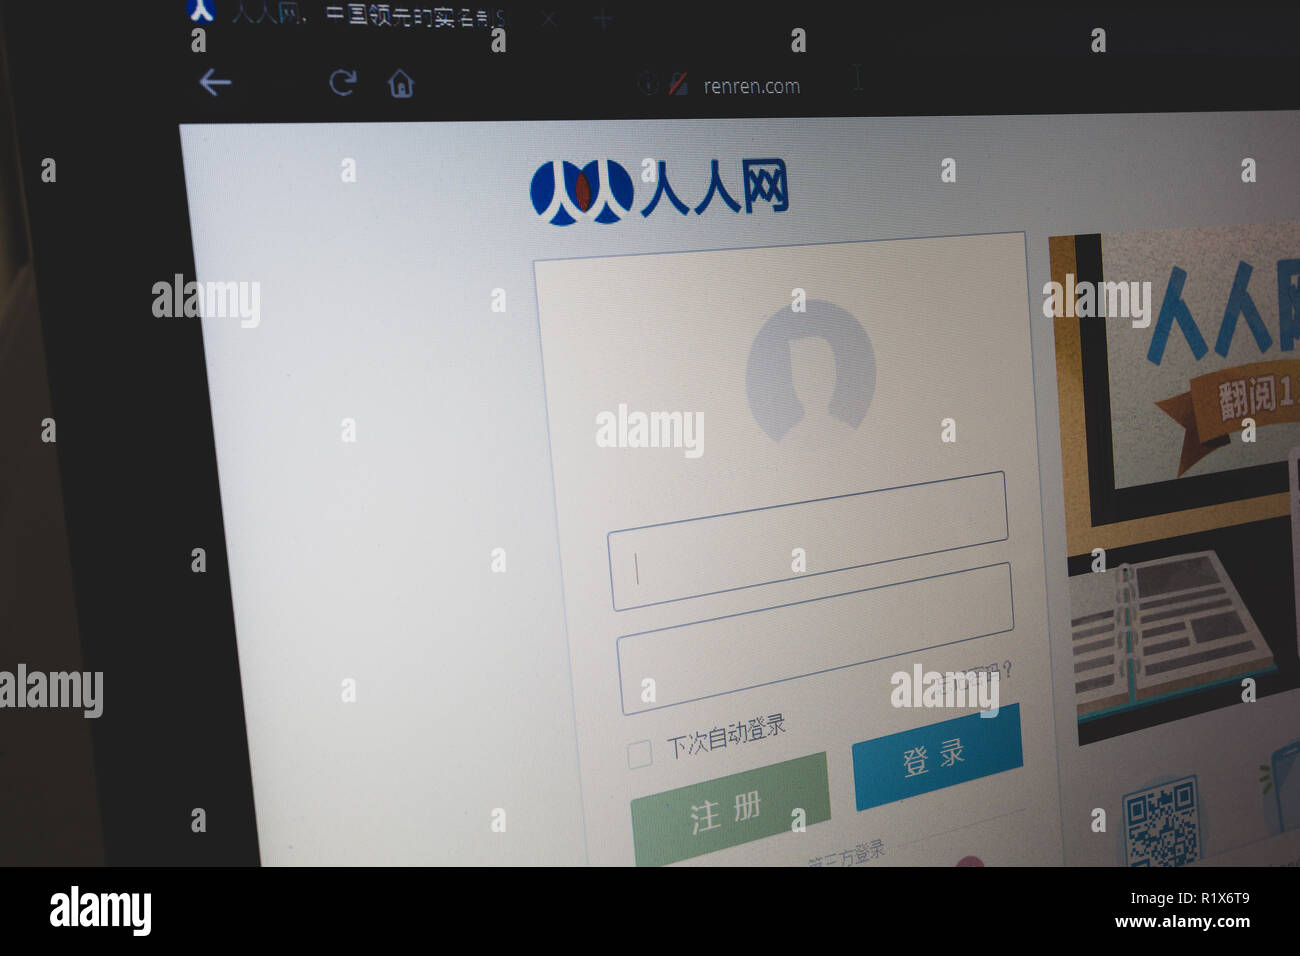 Renren Network, Chinese social networking service logo on its website is shown on a laptop computer screen - Stock Image